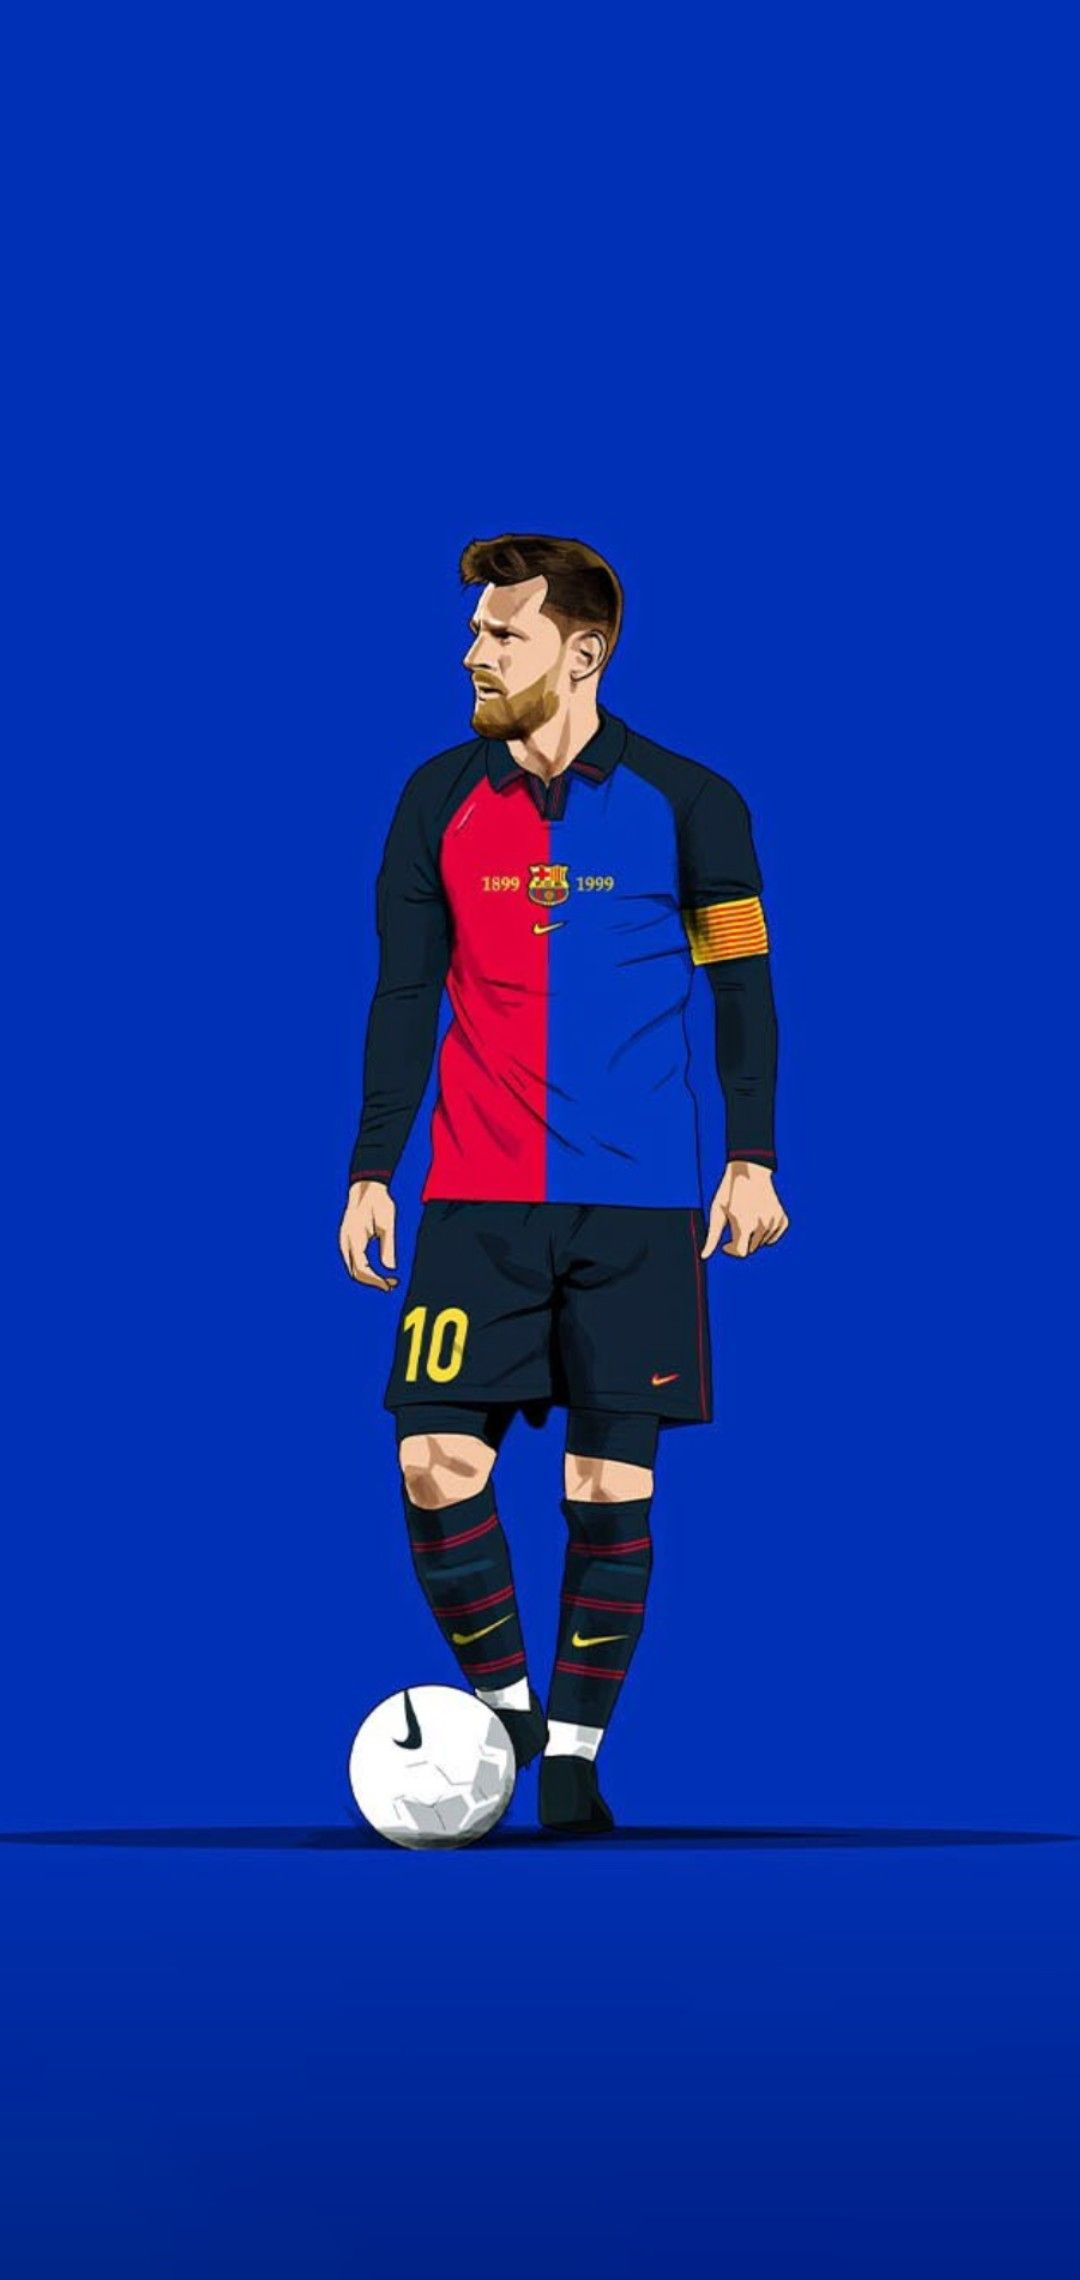 Pin By Hassan Hamdii On Arabic Quotes Lionel Messi Wallpapers Barcelona Football Messi Soccer